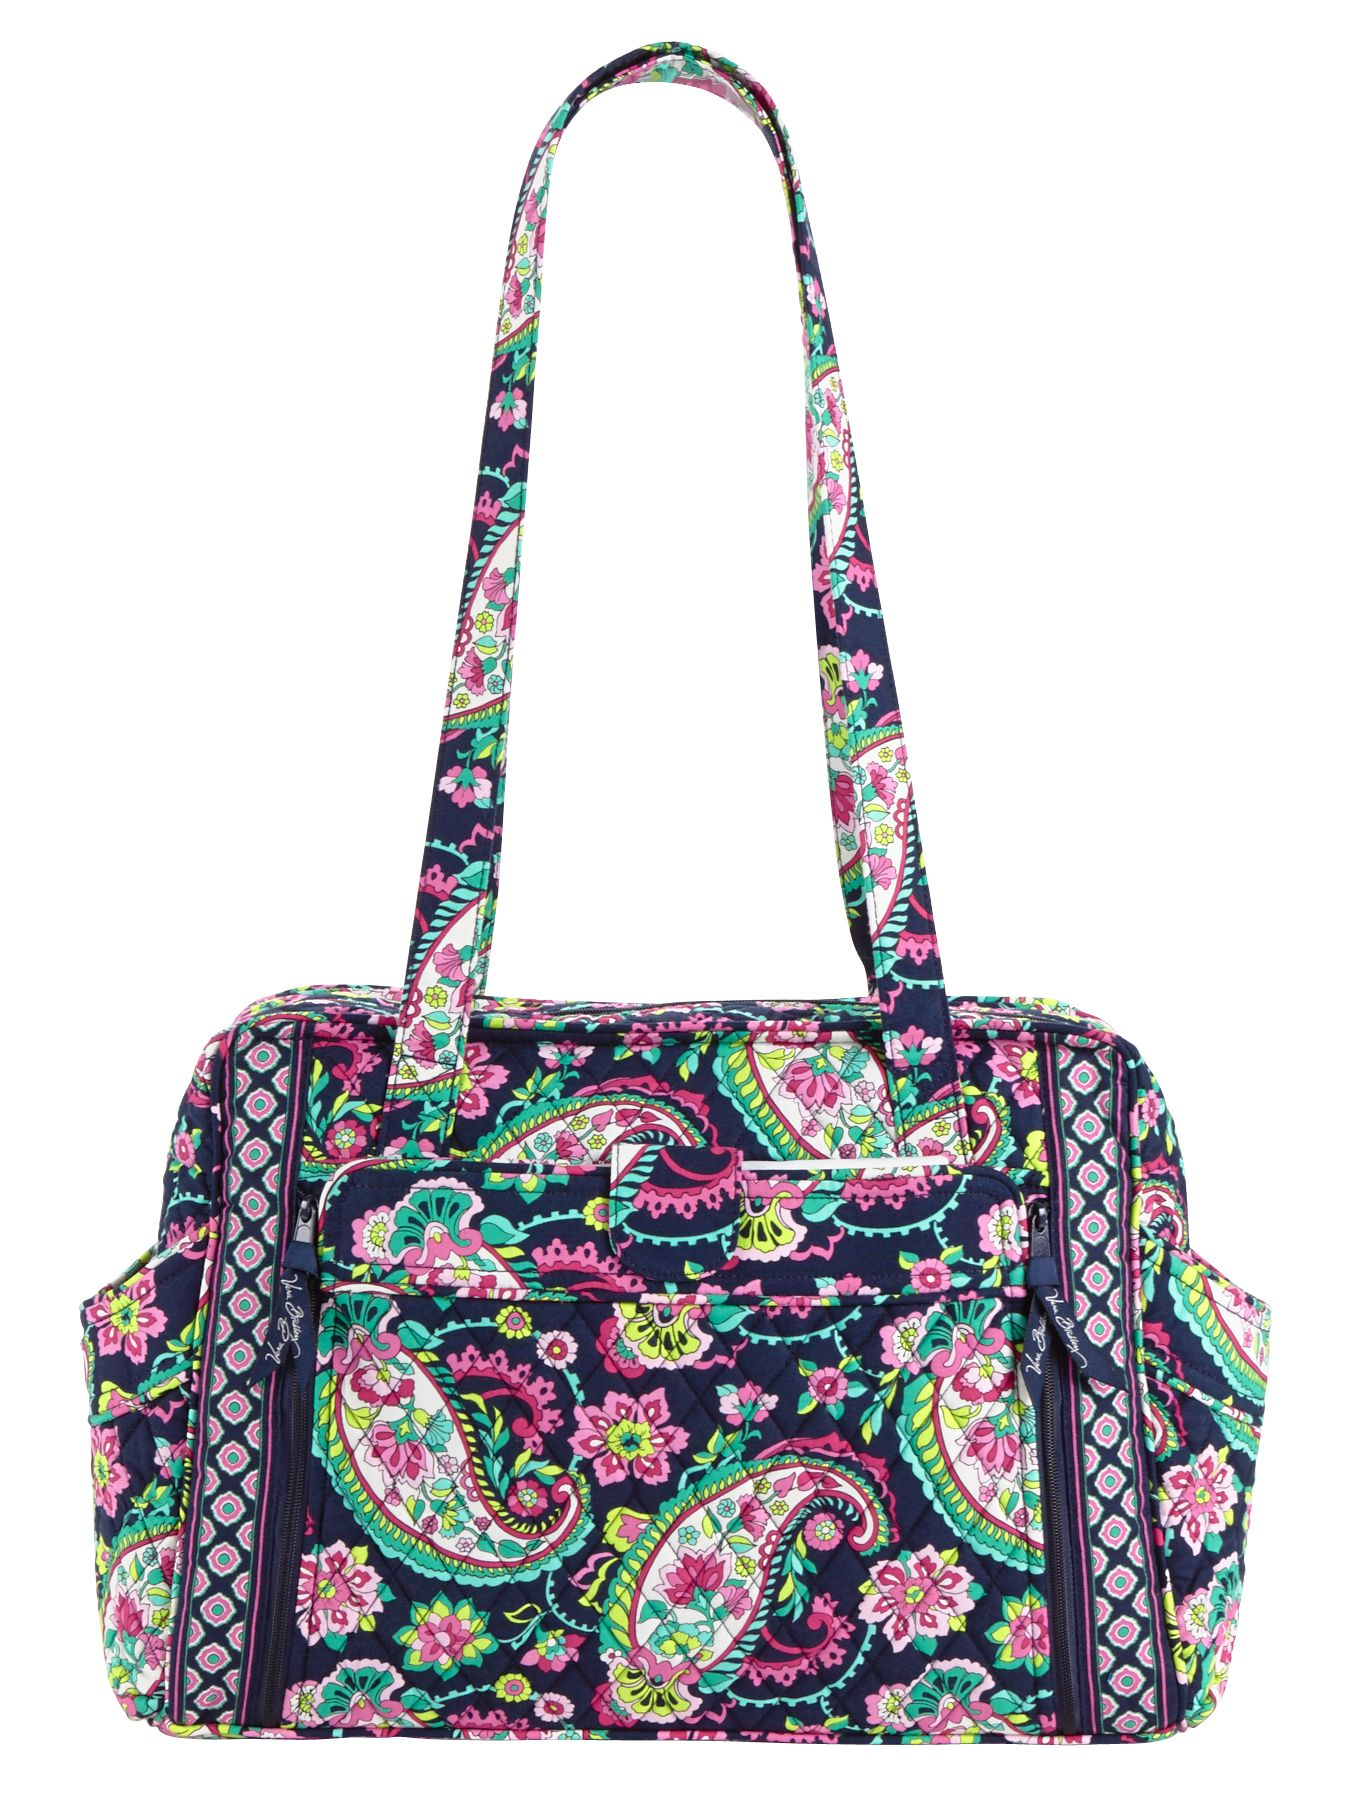 vera bradley make a change baby bag ebay. Black Bedroom Furniture Sets. Home Design Ideas